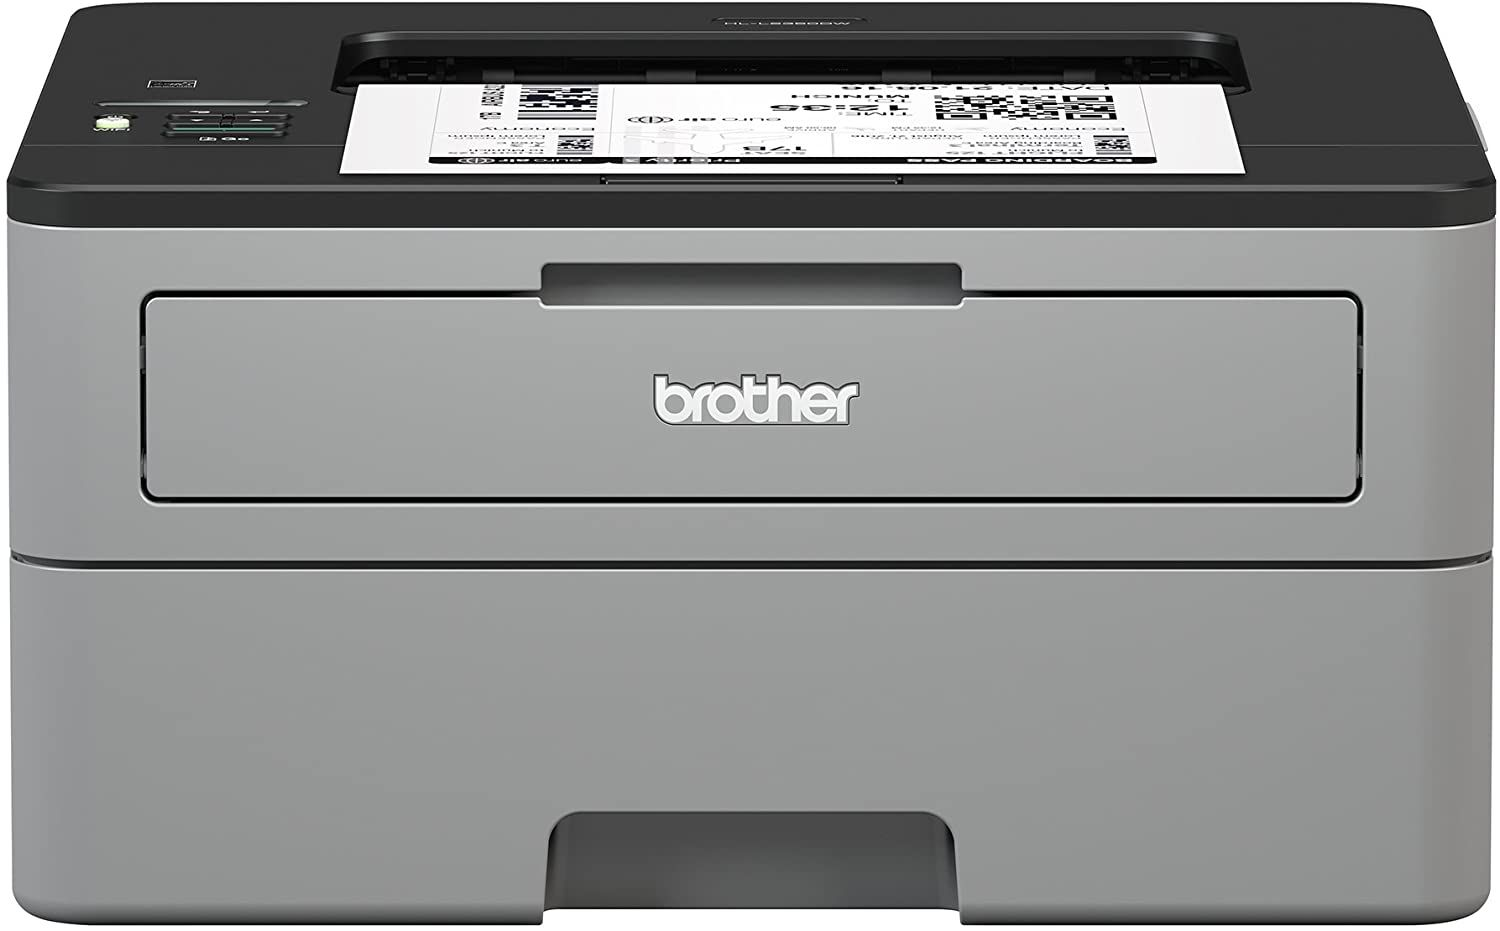 Printer Output Type Monochrome Printing Technology Laser Brand Brother Printing Media Type Envelopes Connecti In 2020 Wireless Printer Laser Printer Best Laser Printer